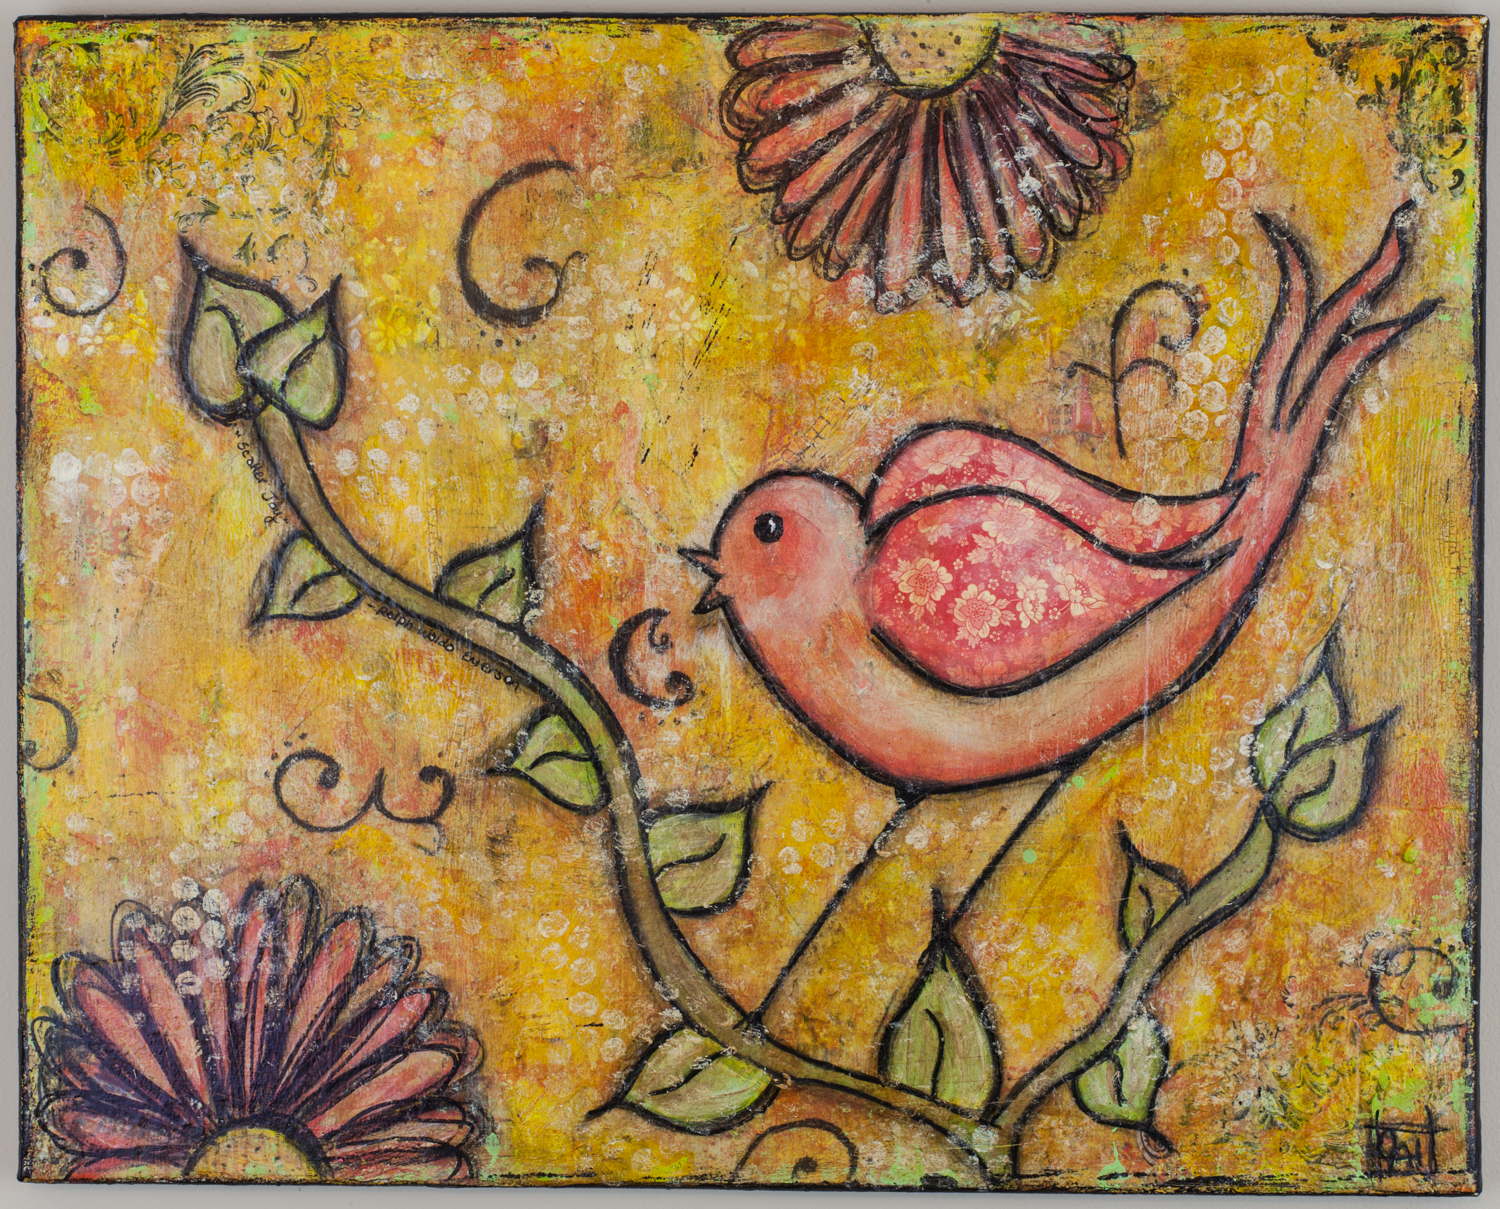 Mixed-Media Bird Painting by Chrysti Hydeck   Created in Raleigh, North Carolina